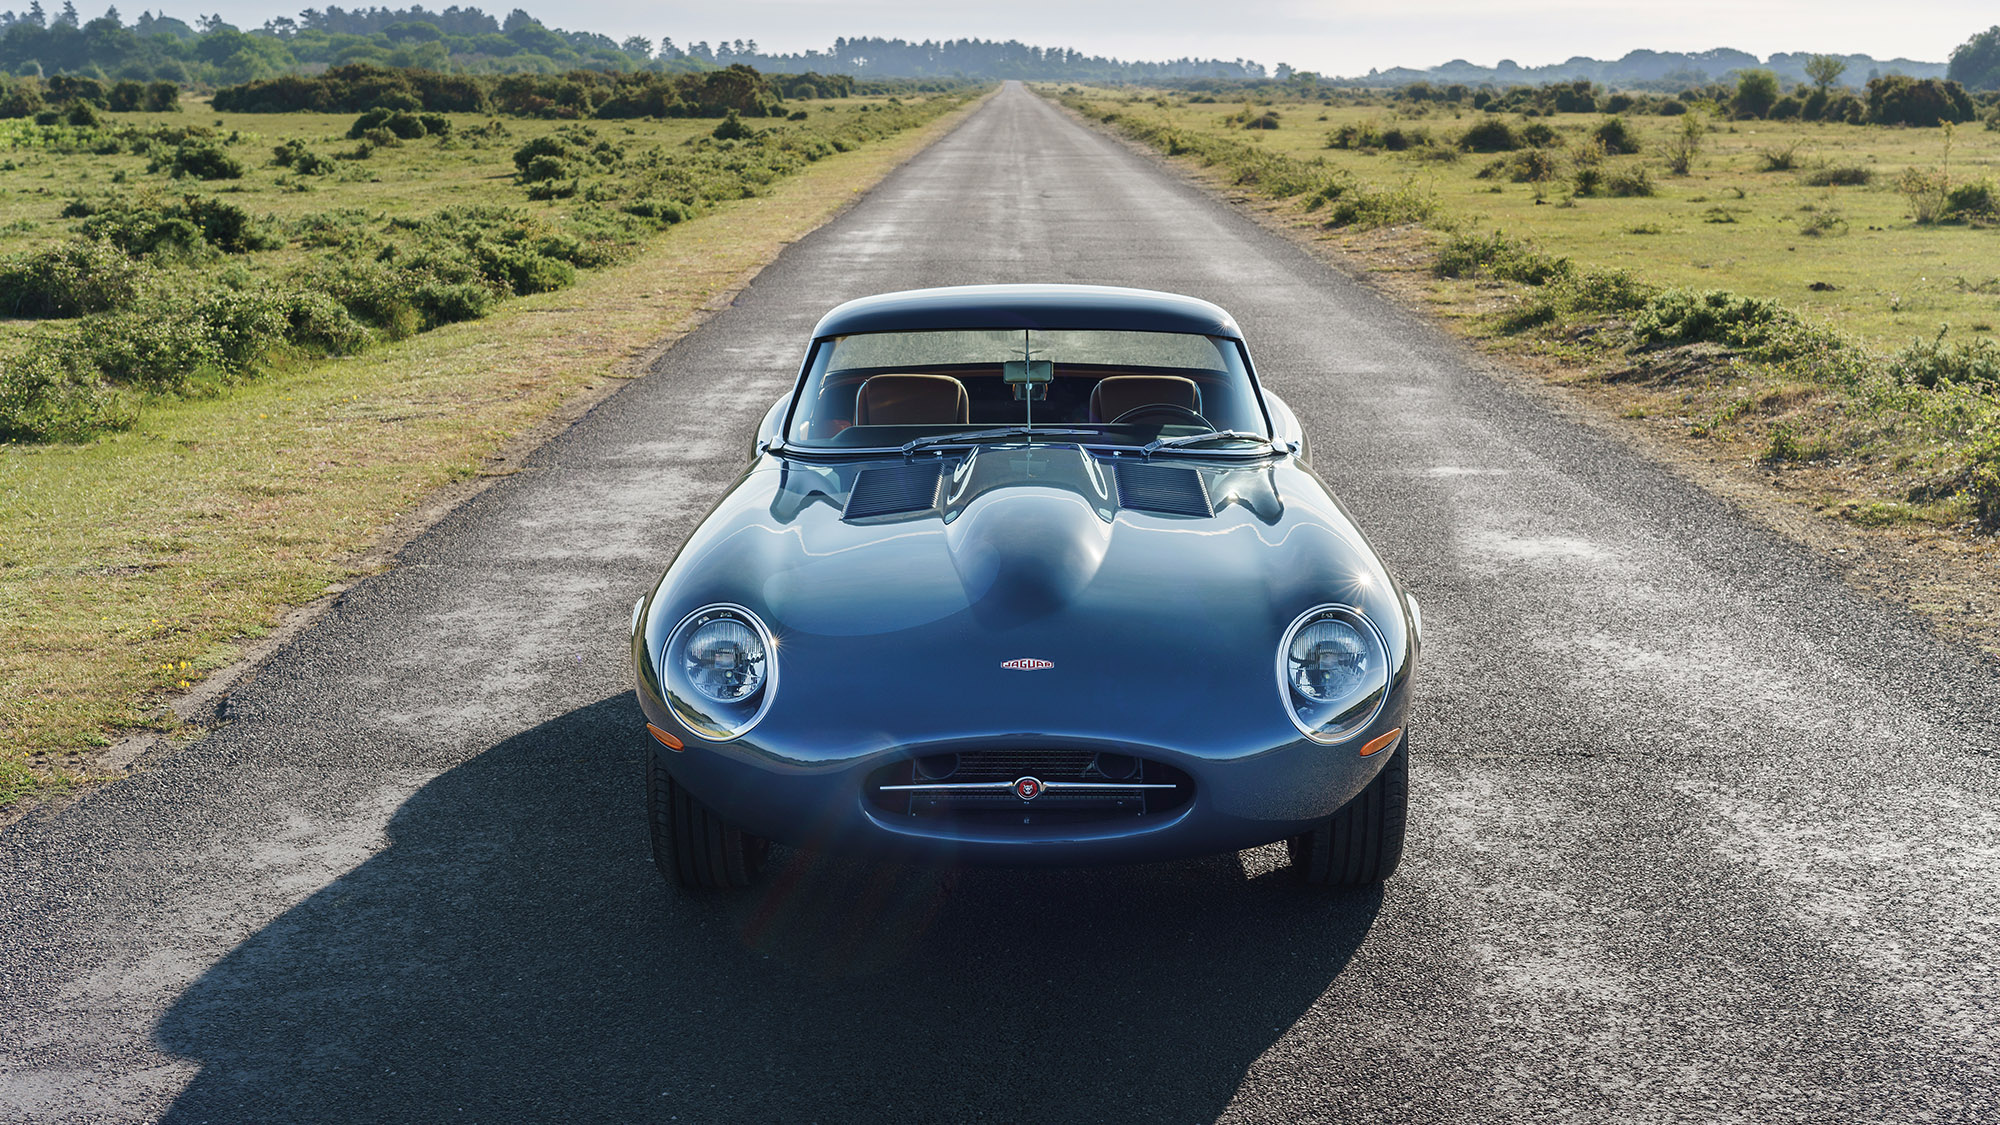 Front shot of the 2020 Eagle E-type Lightweight GT